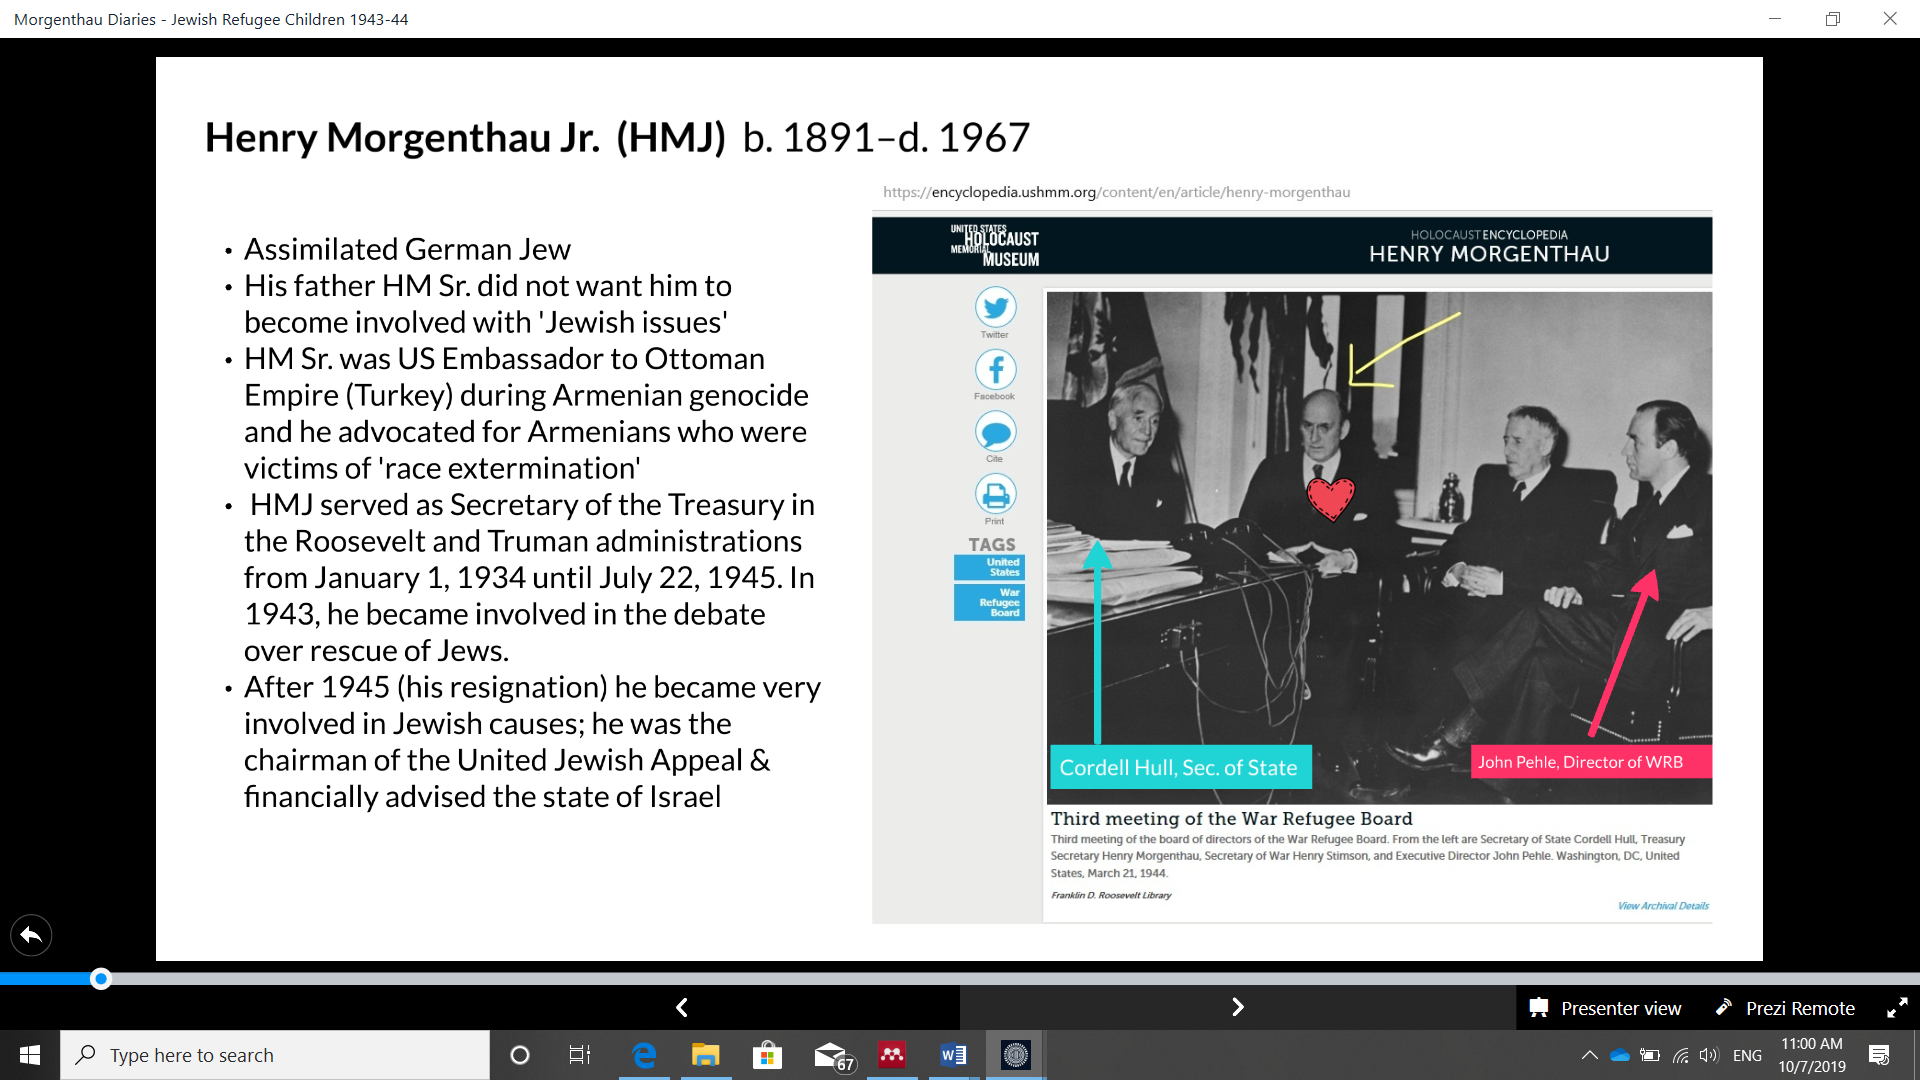 Slide 3 from EHRI presentation. Photograph of the Third Meeting of the War Refugee Board from USHMM, and brief historical biography of HMJ